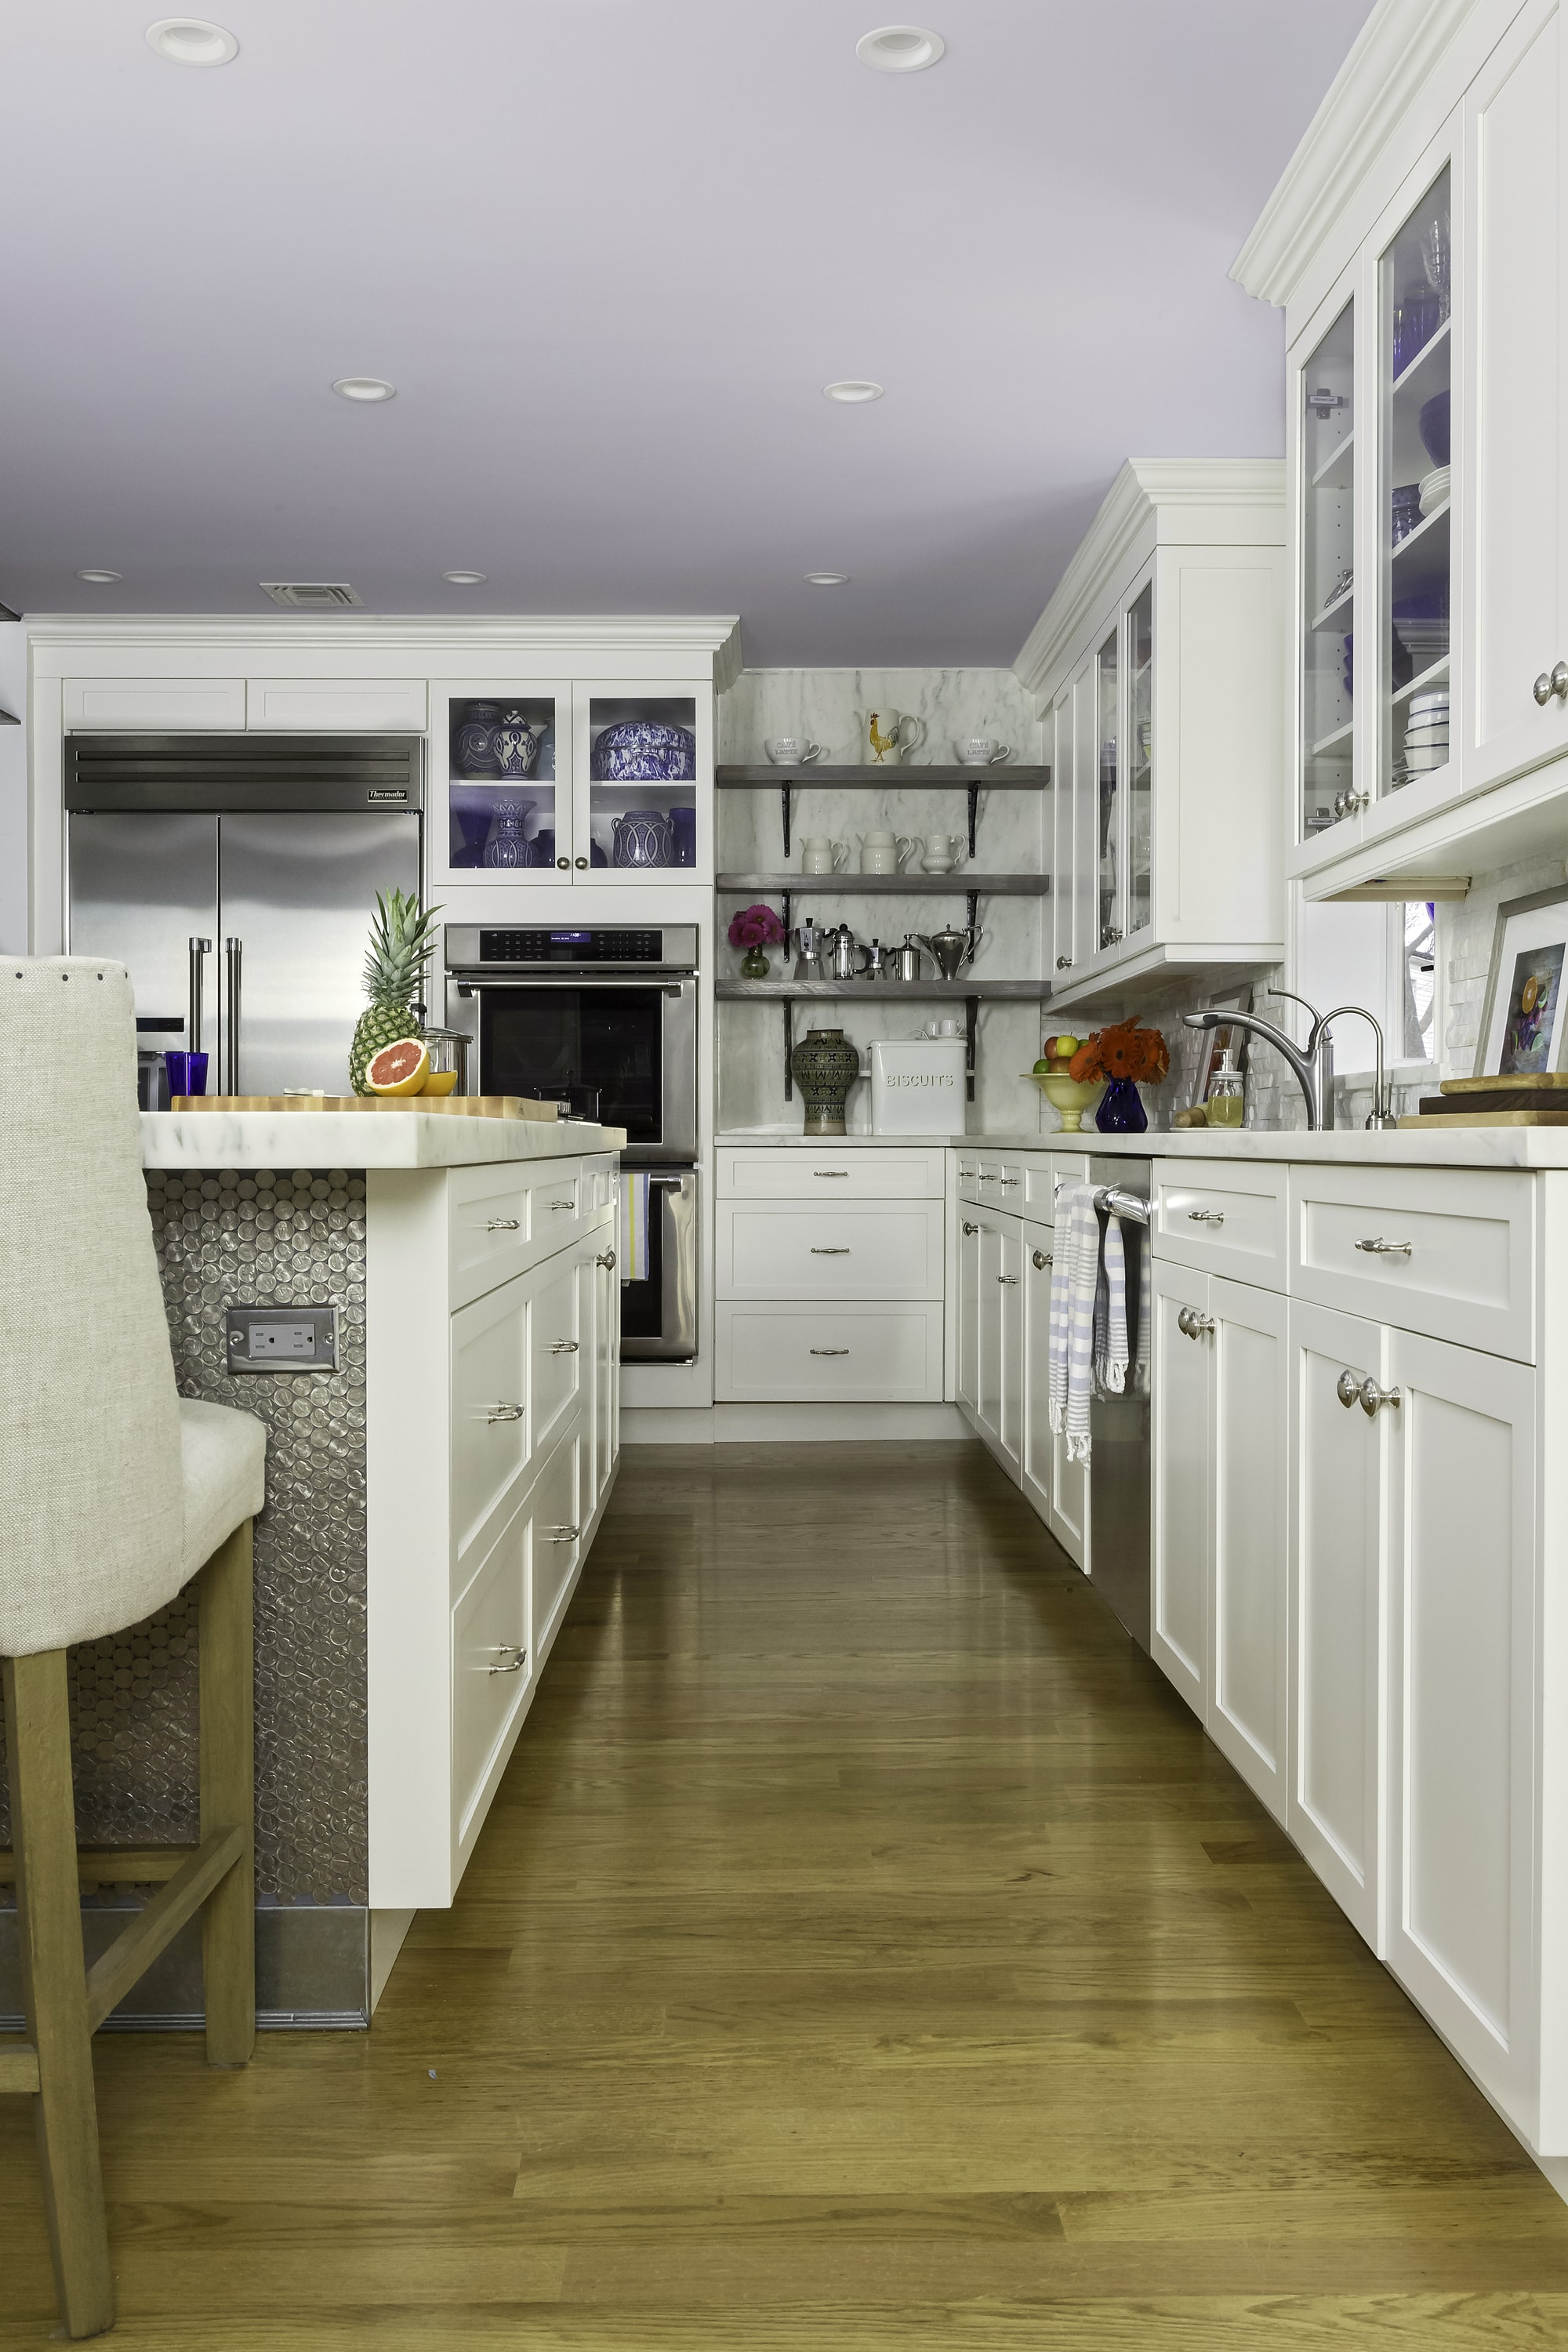 Transitional style kitchen with wooden floors